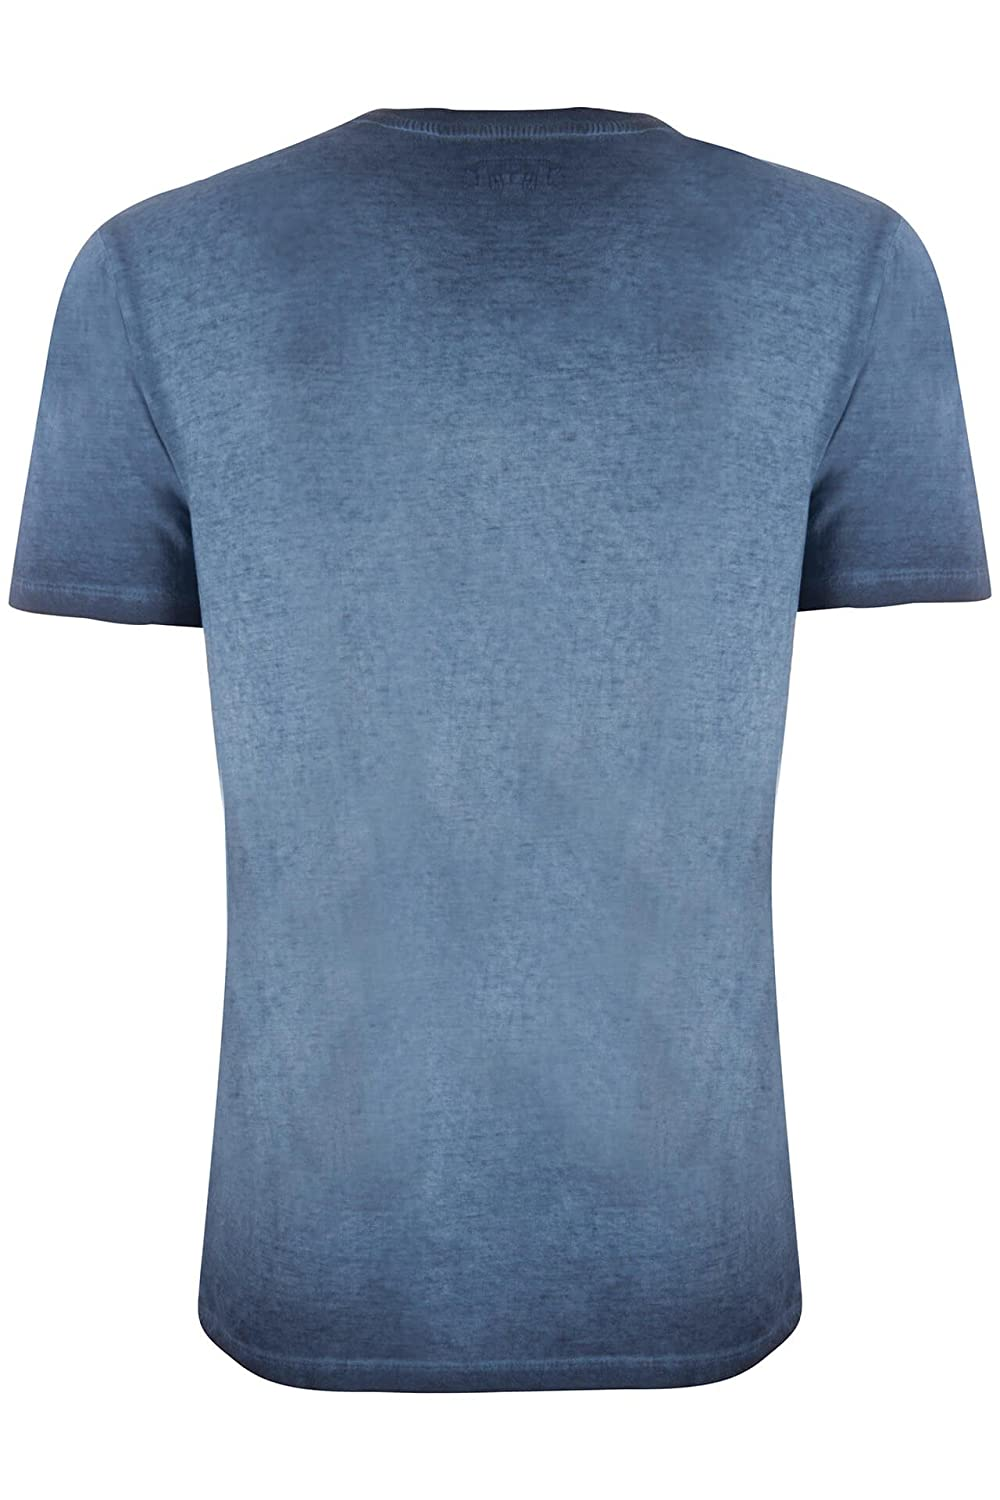 4807c688 Armani Jeans T Shirts Sale - Aztec Stone and Reclamations